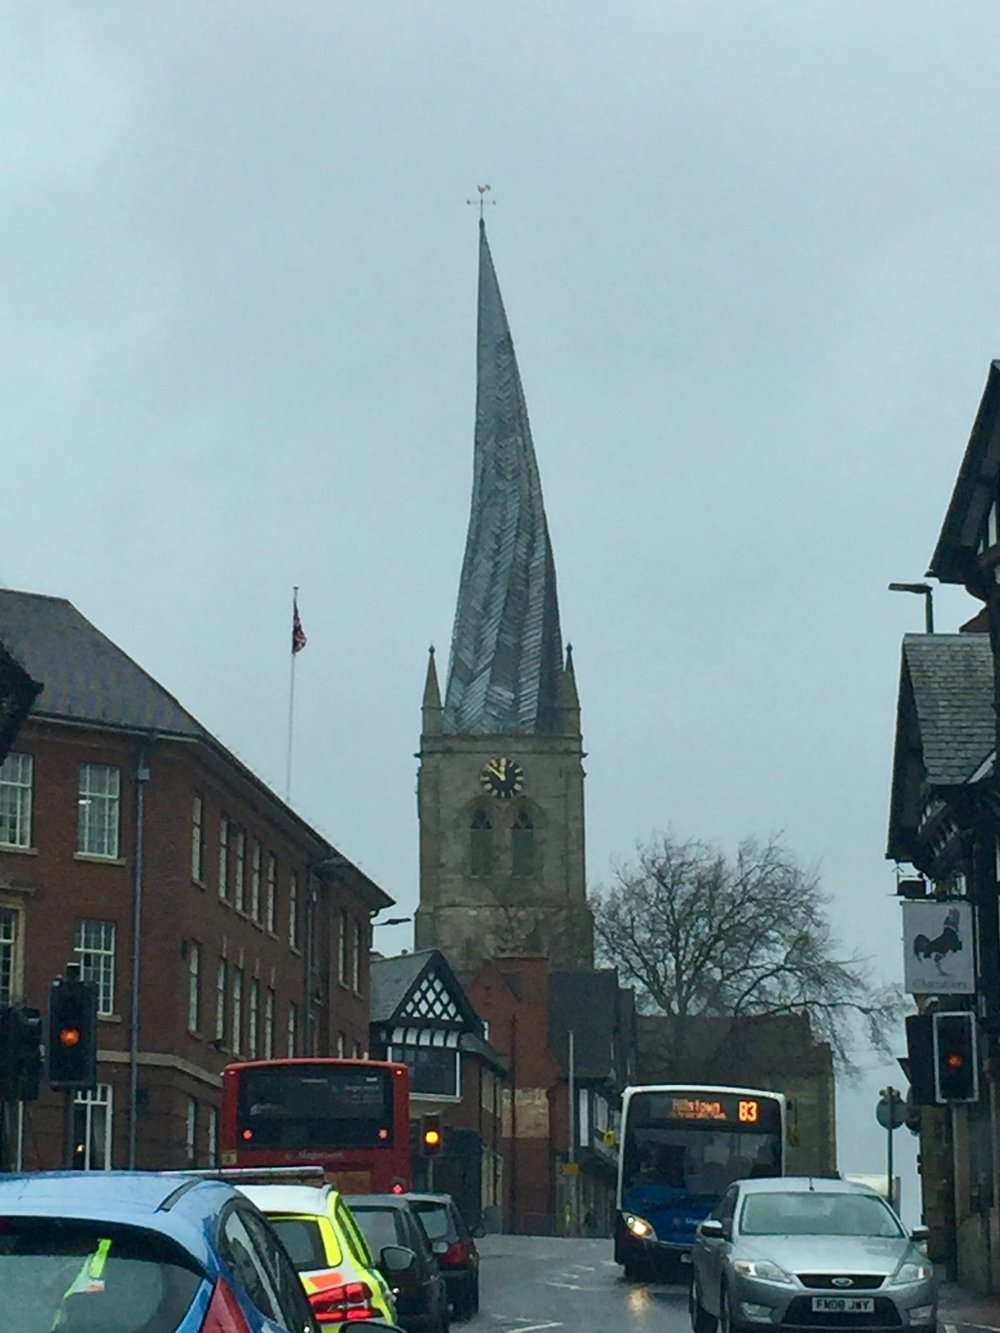 The Church of Saint Mary and All Saints in Chesterfield, England, UK with its crooked spire